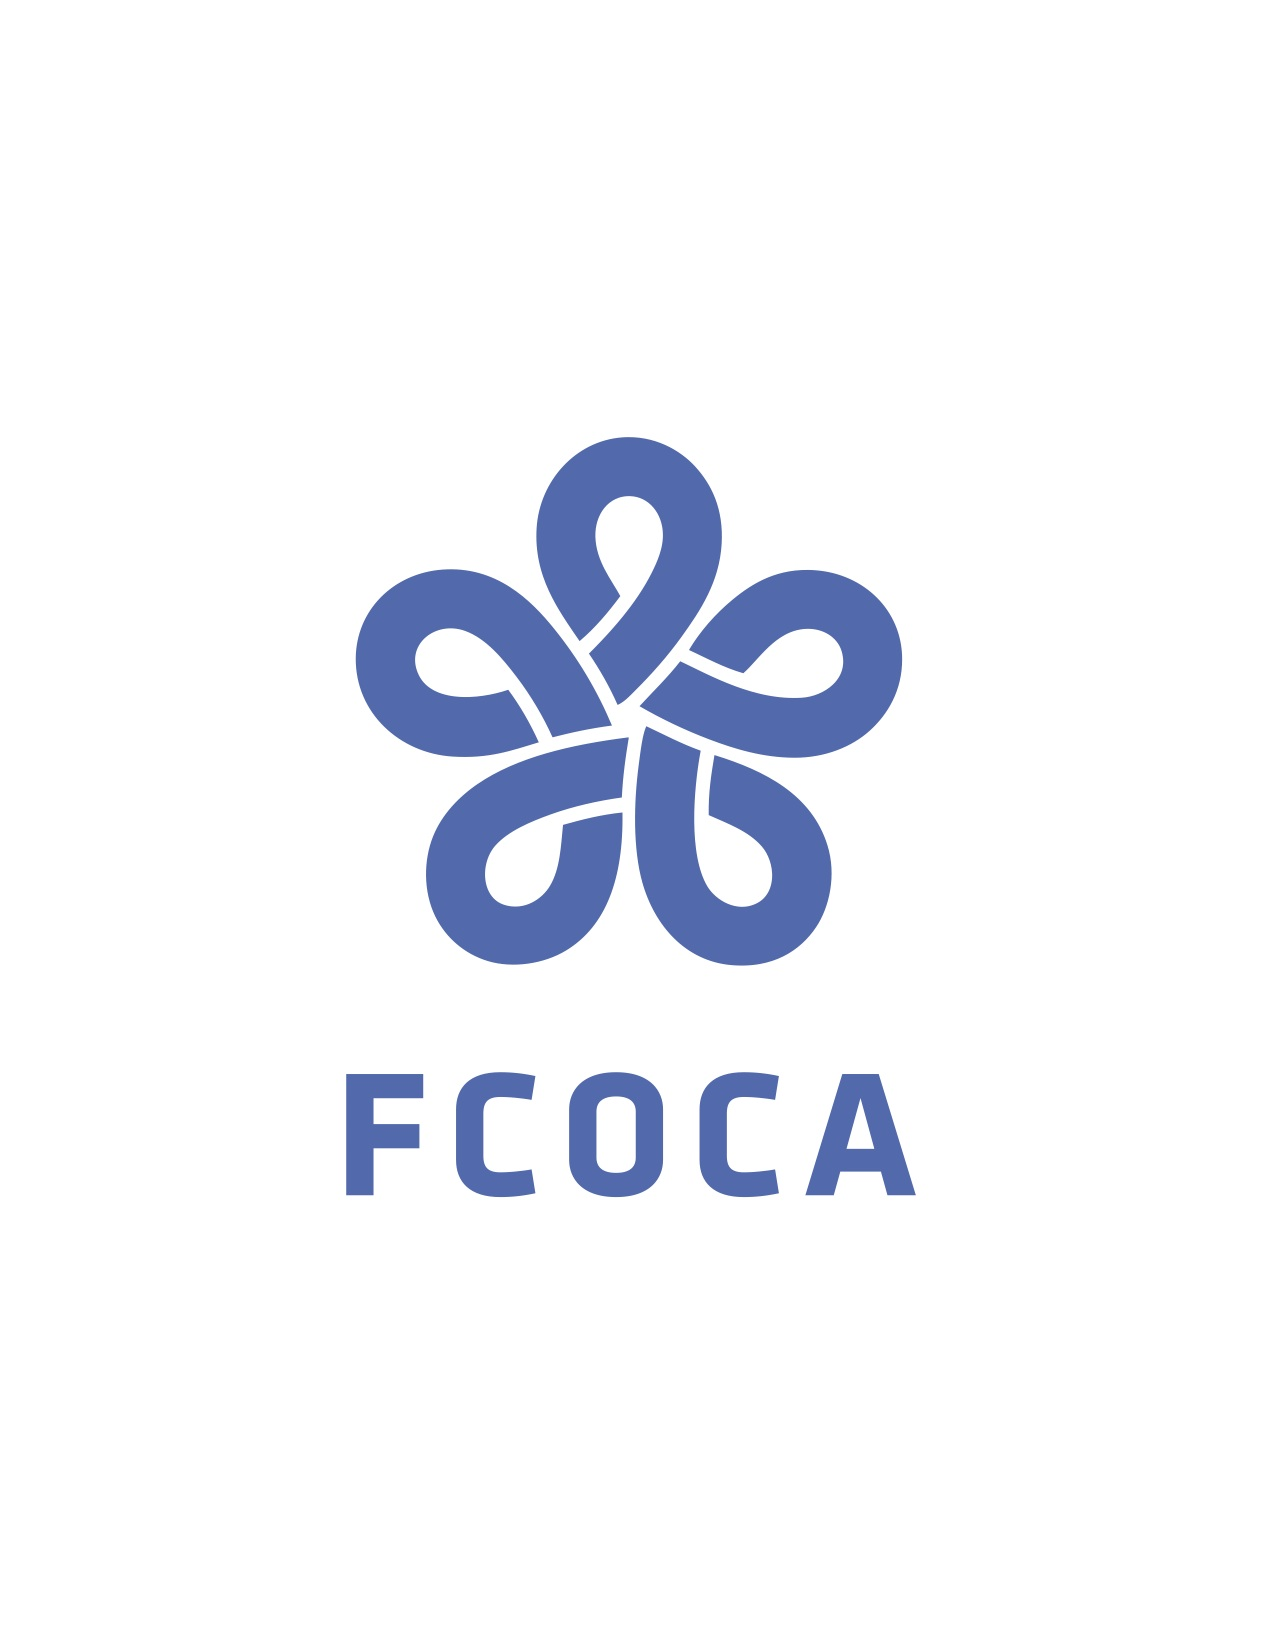 FCOCCA